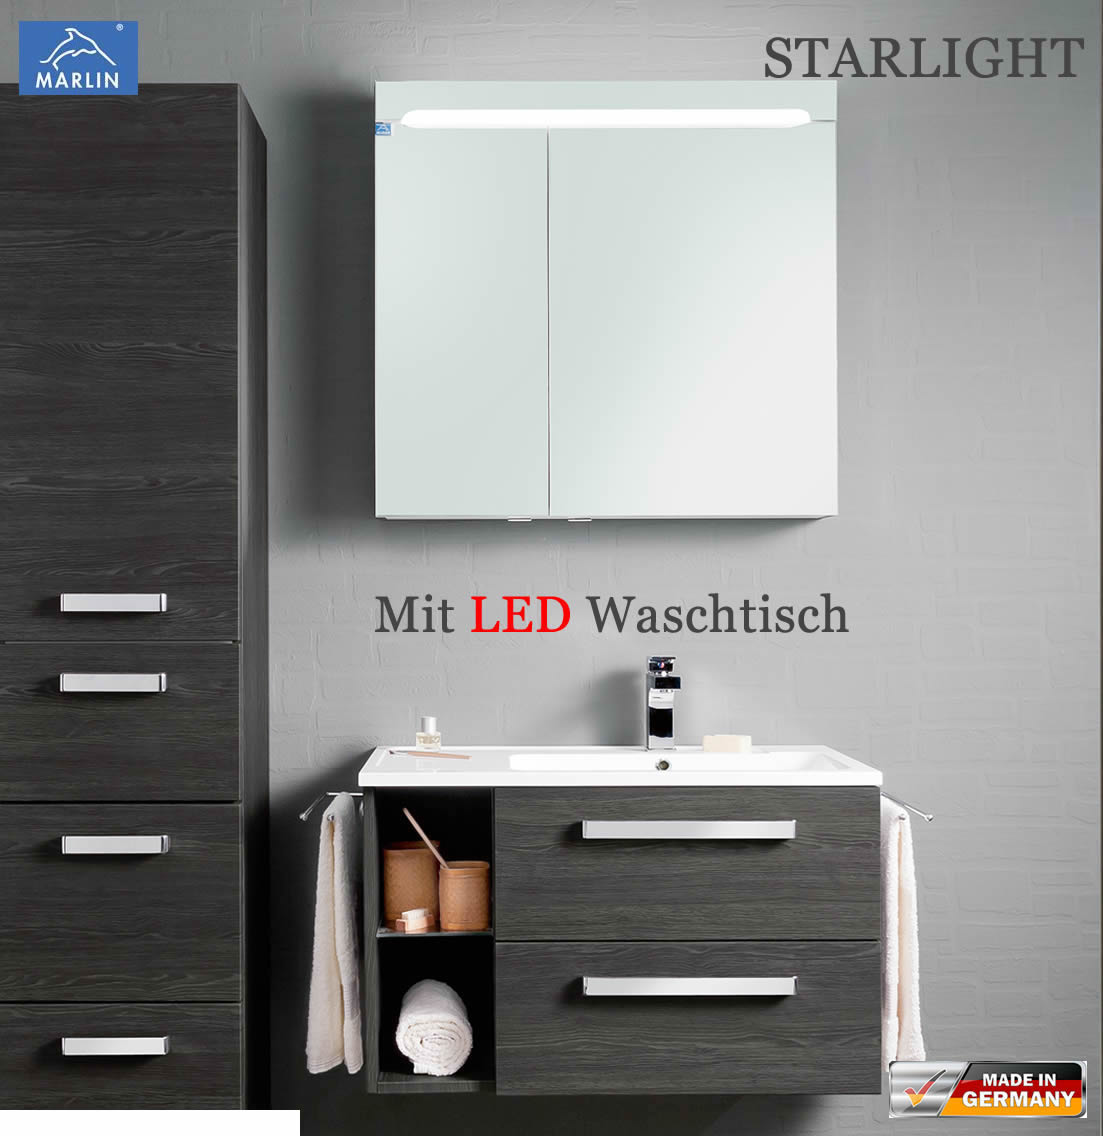 marlin starlight badm bel set 80 cm mit led waschtisch aus mineralmarmor v2 2 impuls home. Black Bedroom Furniture Sets. Home Design Ideas